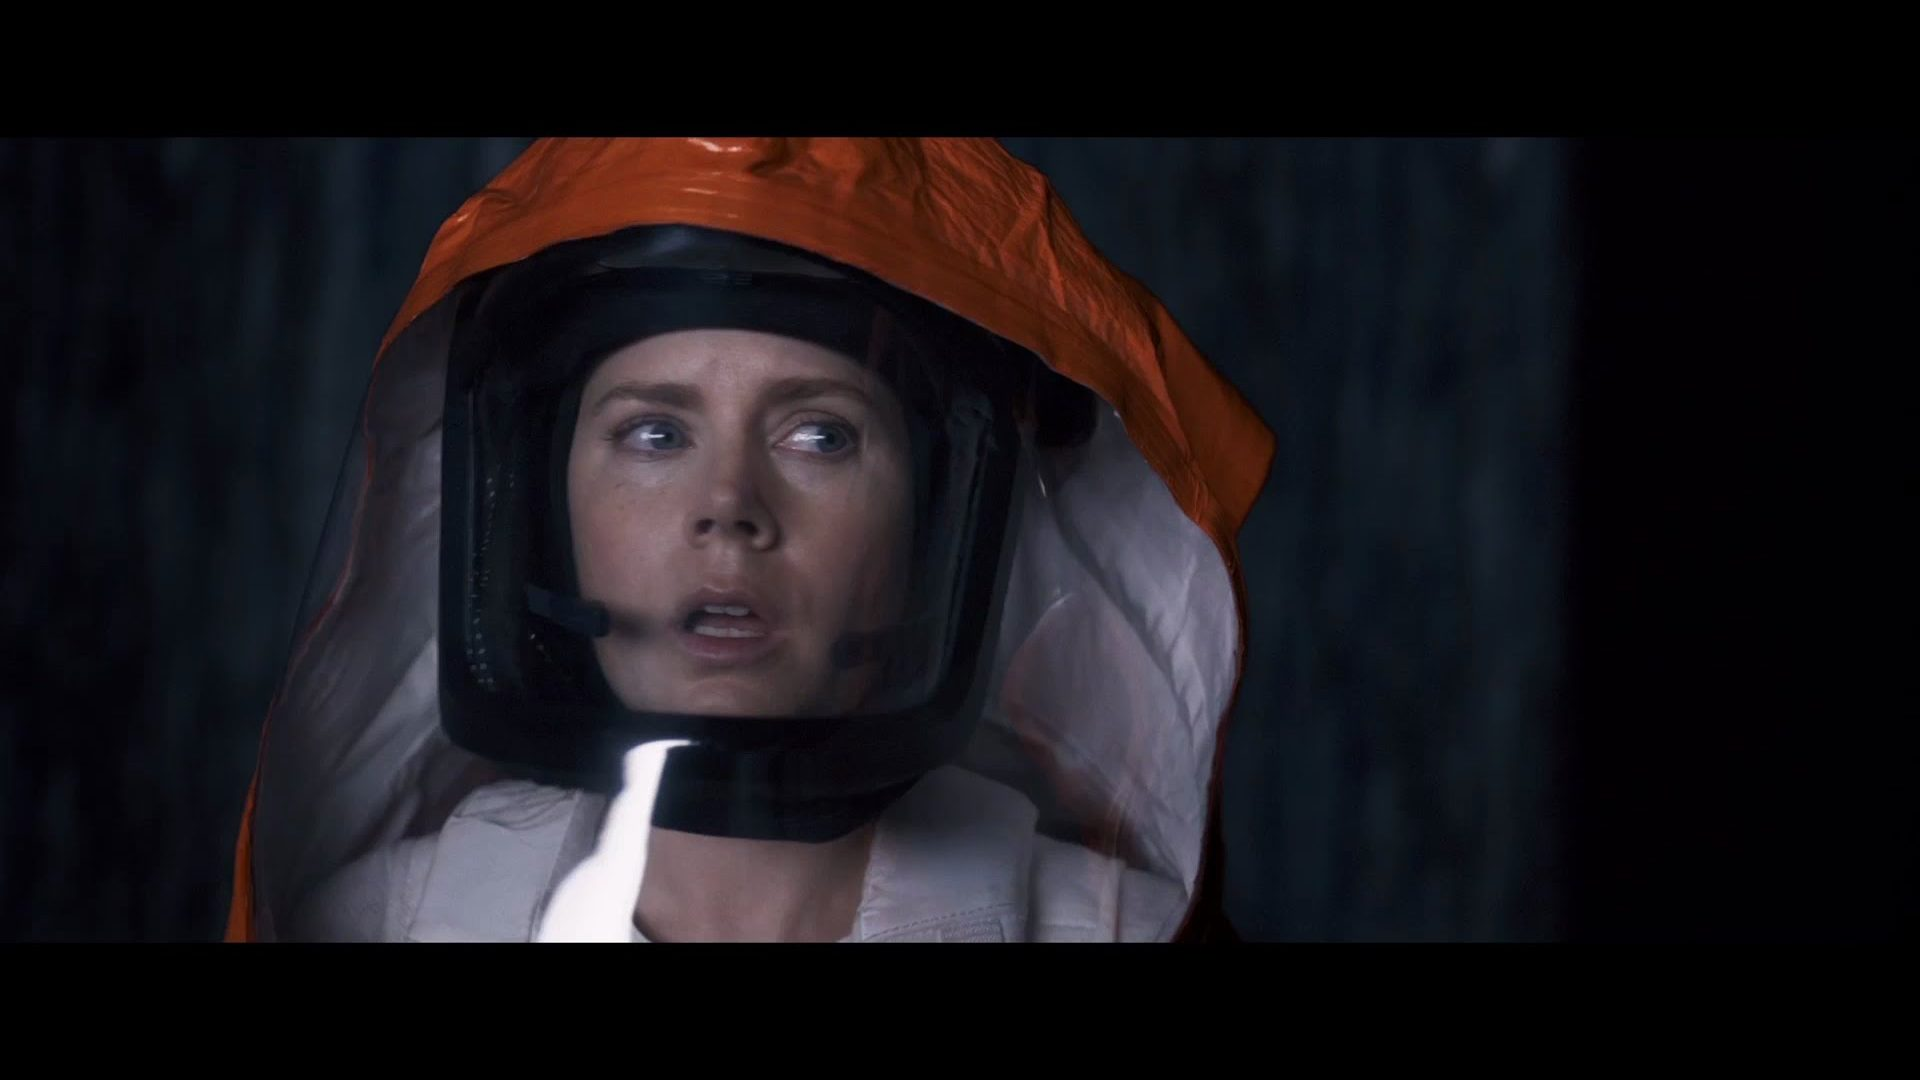 ARRIVAL – OFFICIAL TEASER TRAILER [HD]